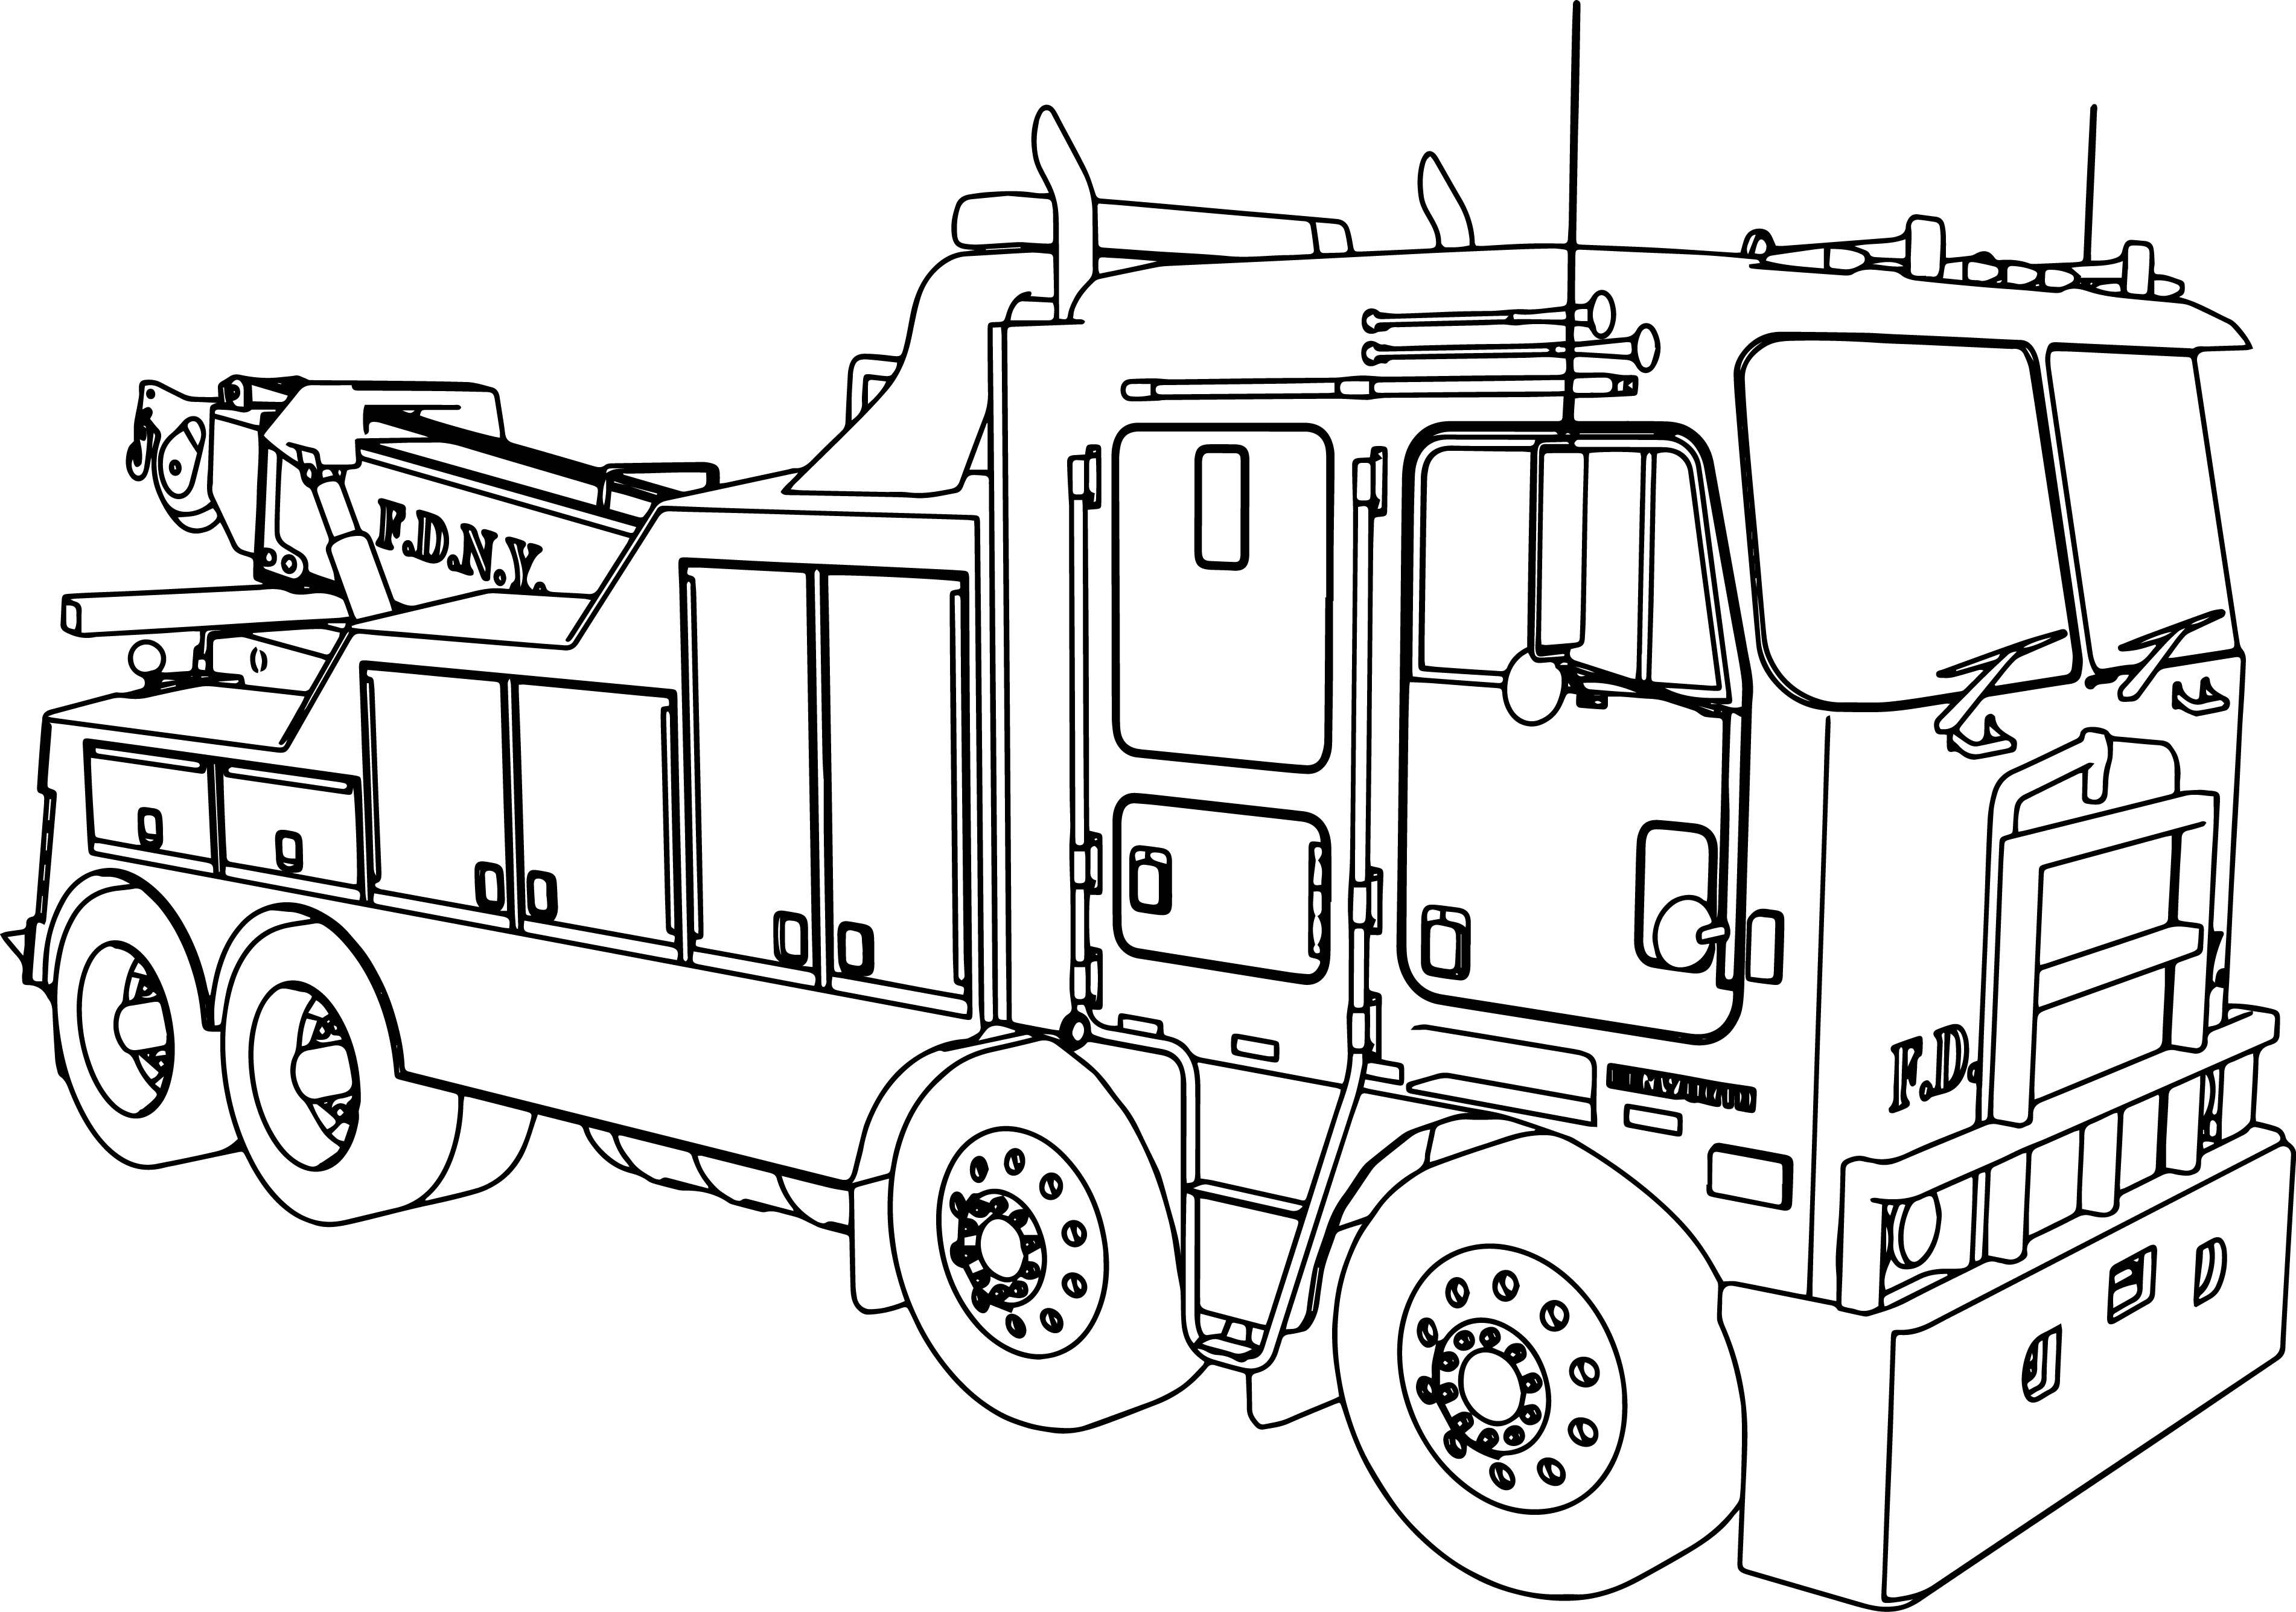 Simple Fire Truck Coloring Pages at GetColorings.com